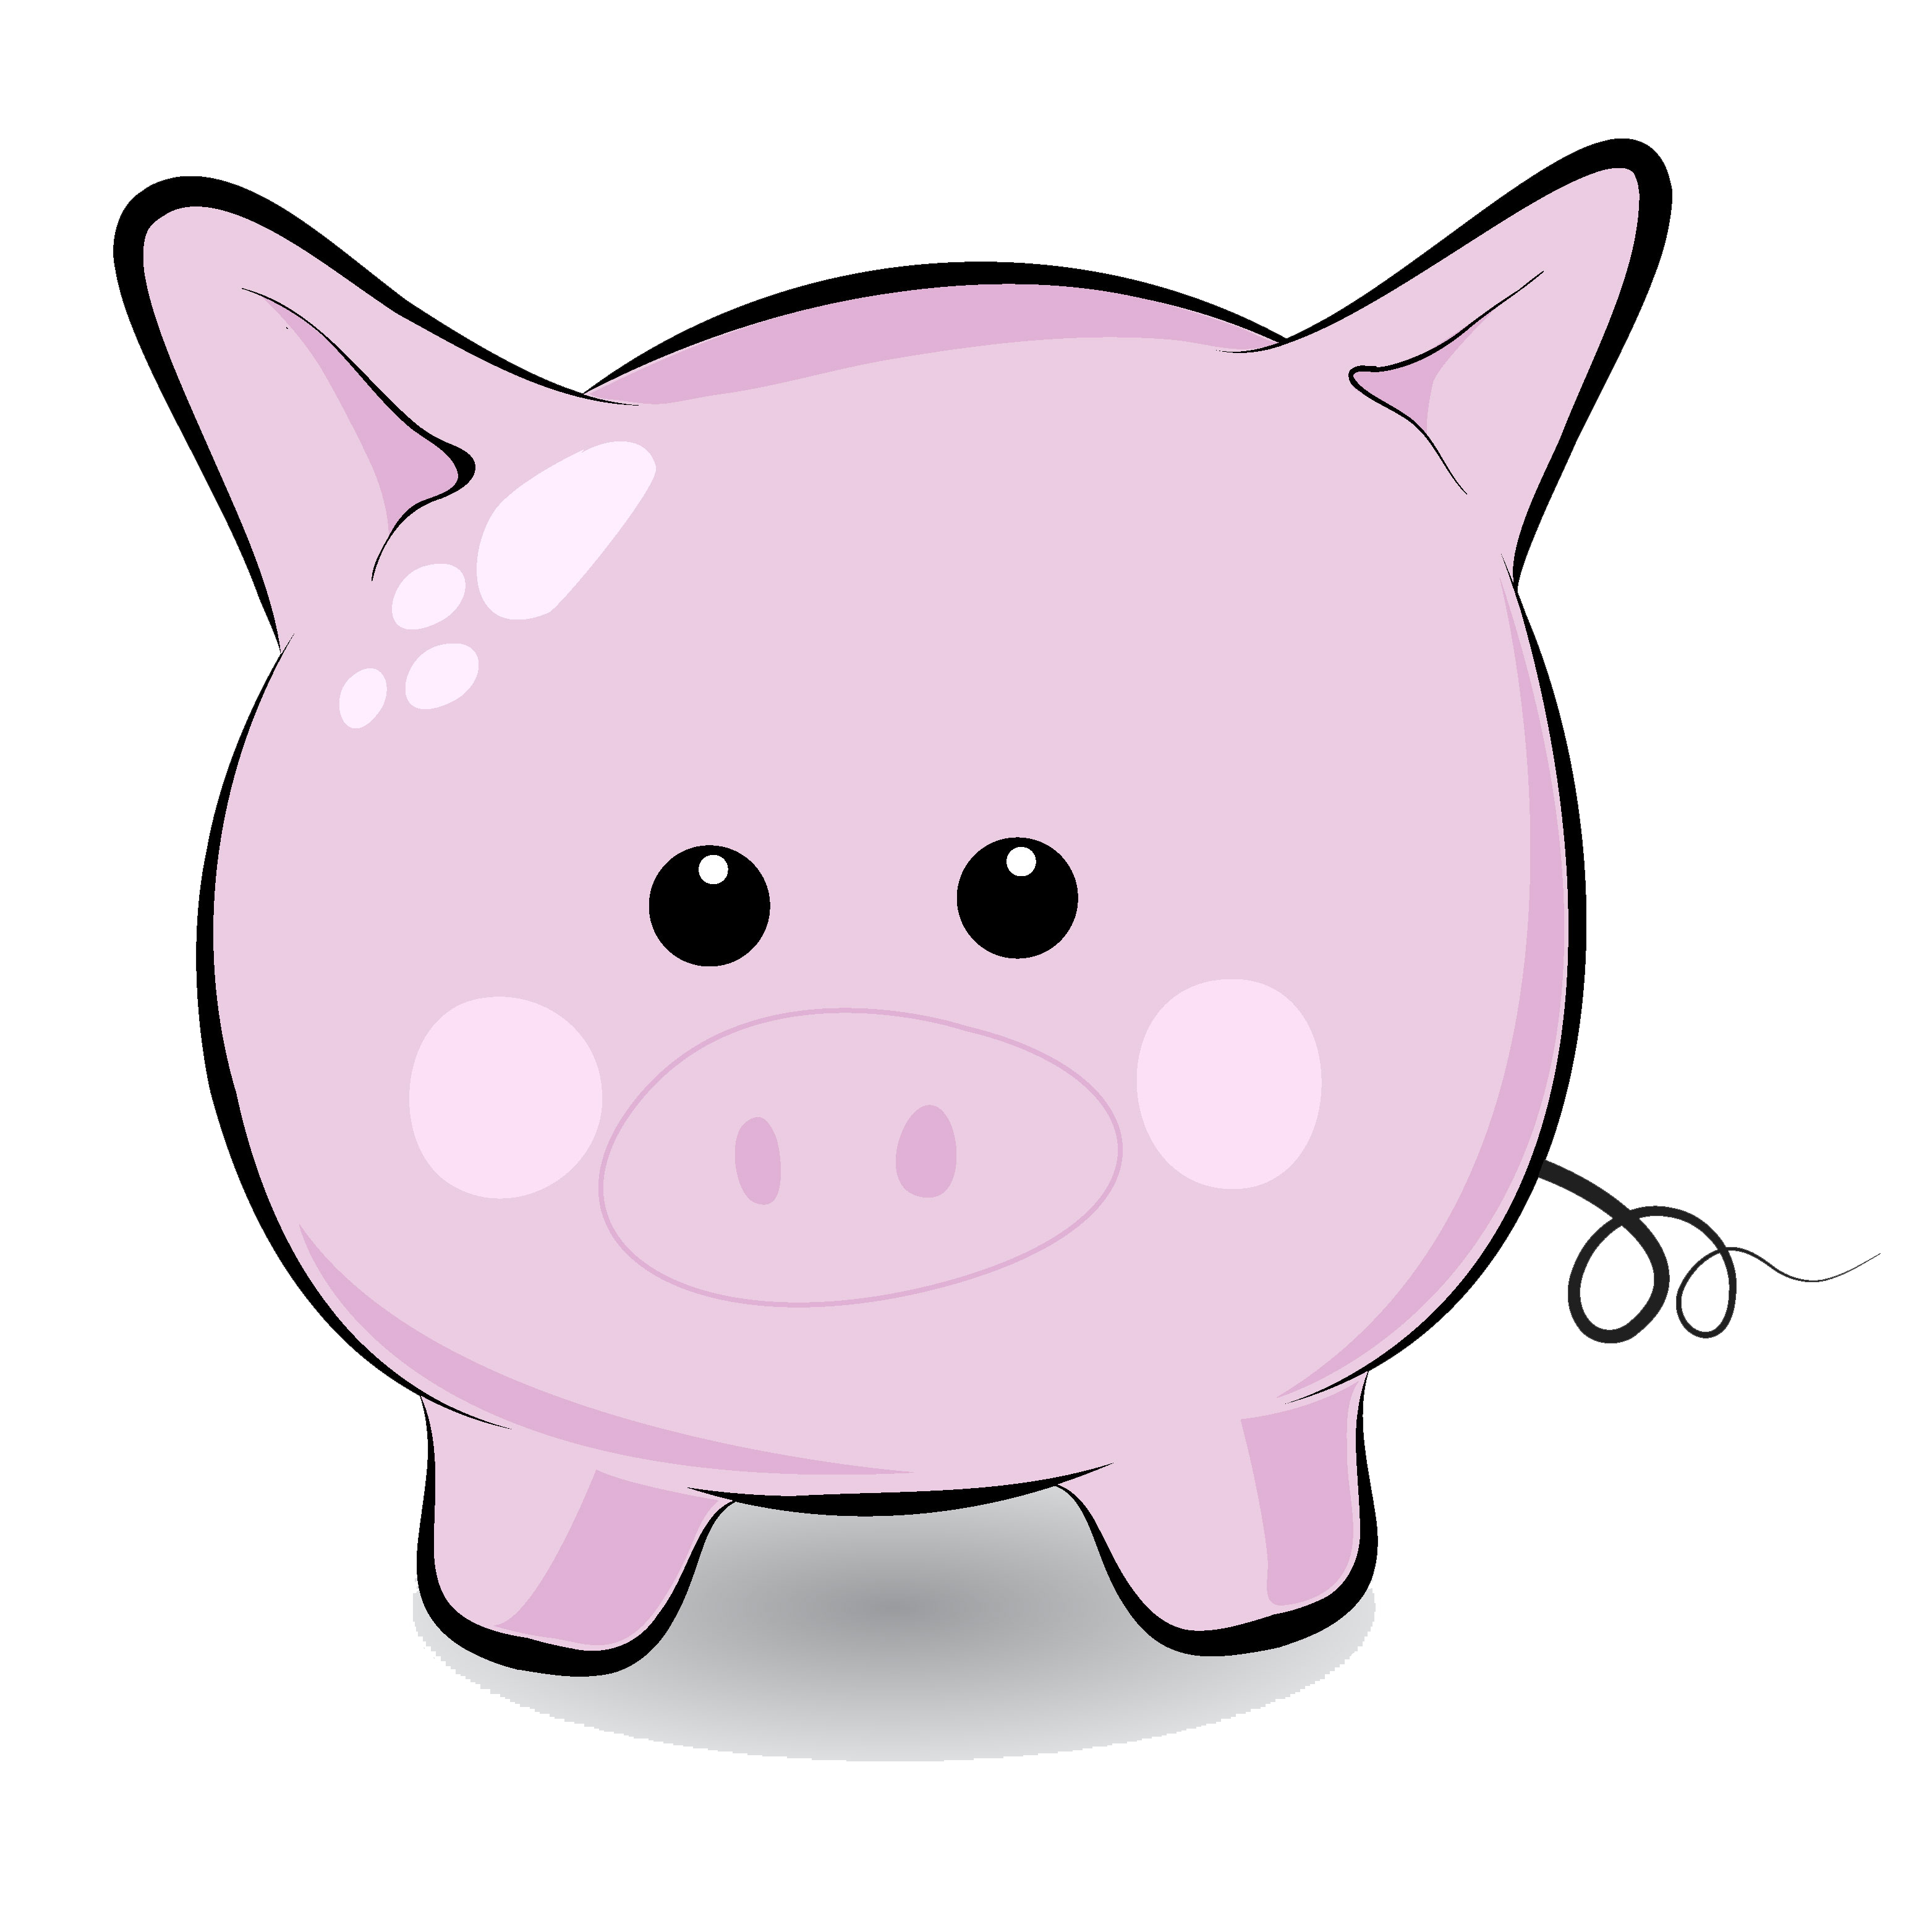 Cute piggy clipart free picture black and white Cute Pig Face Clip Art | Clipart Panda - Free Clipart Images picture black and white